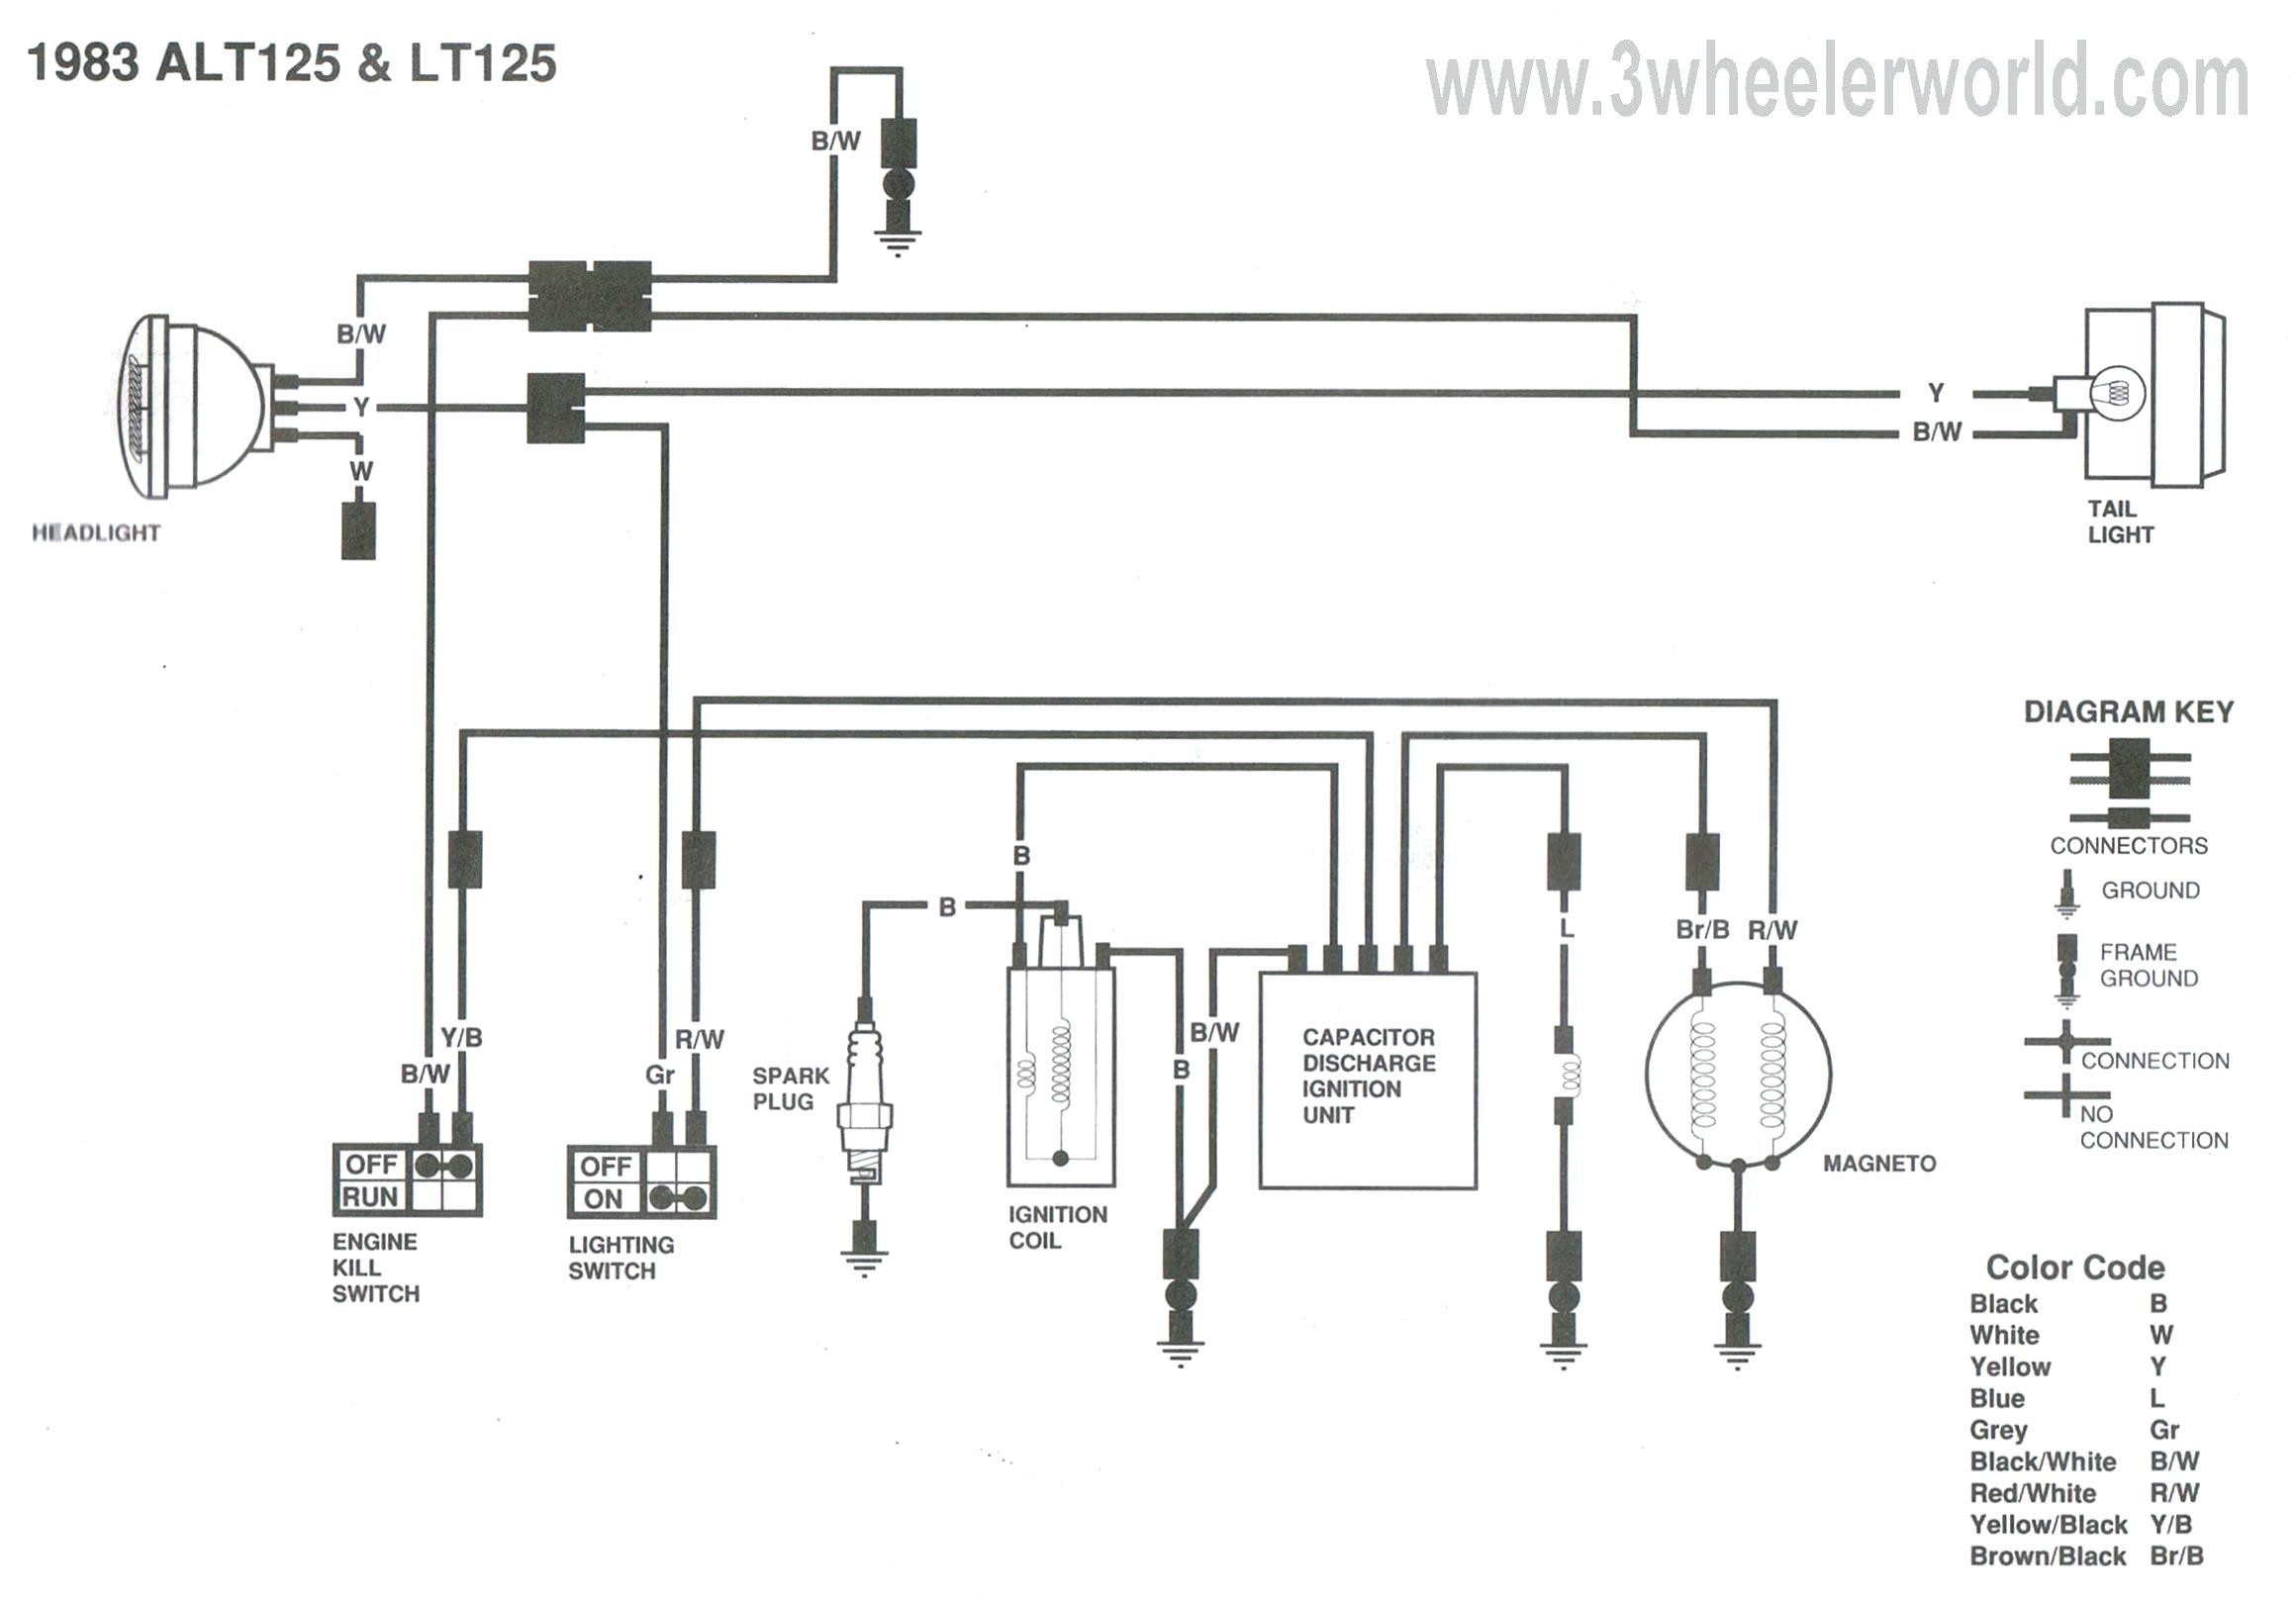 Aprilia 125 Wiring Diagram Electrical Diagrams Charging System And Main Power Supply Circuit Ndash 2006 Rs125 Rs Schematics Motorcycles Source